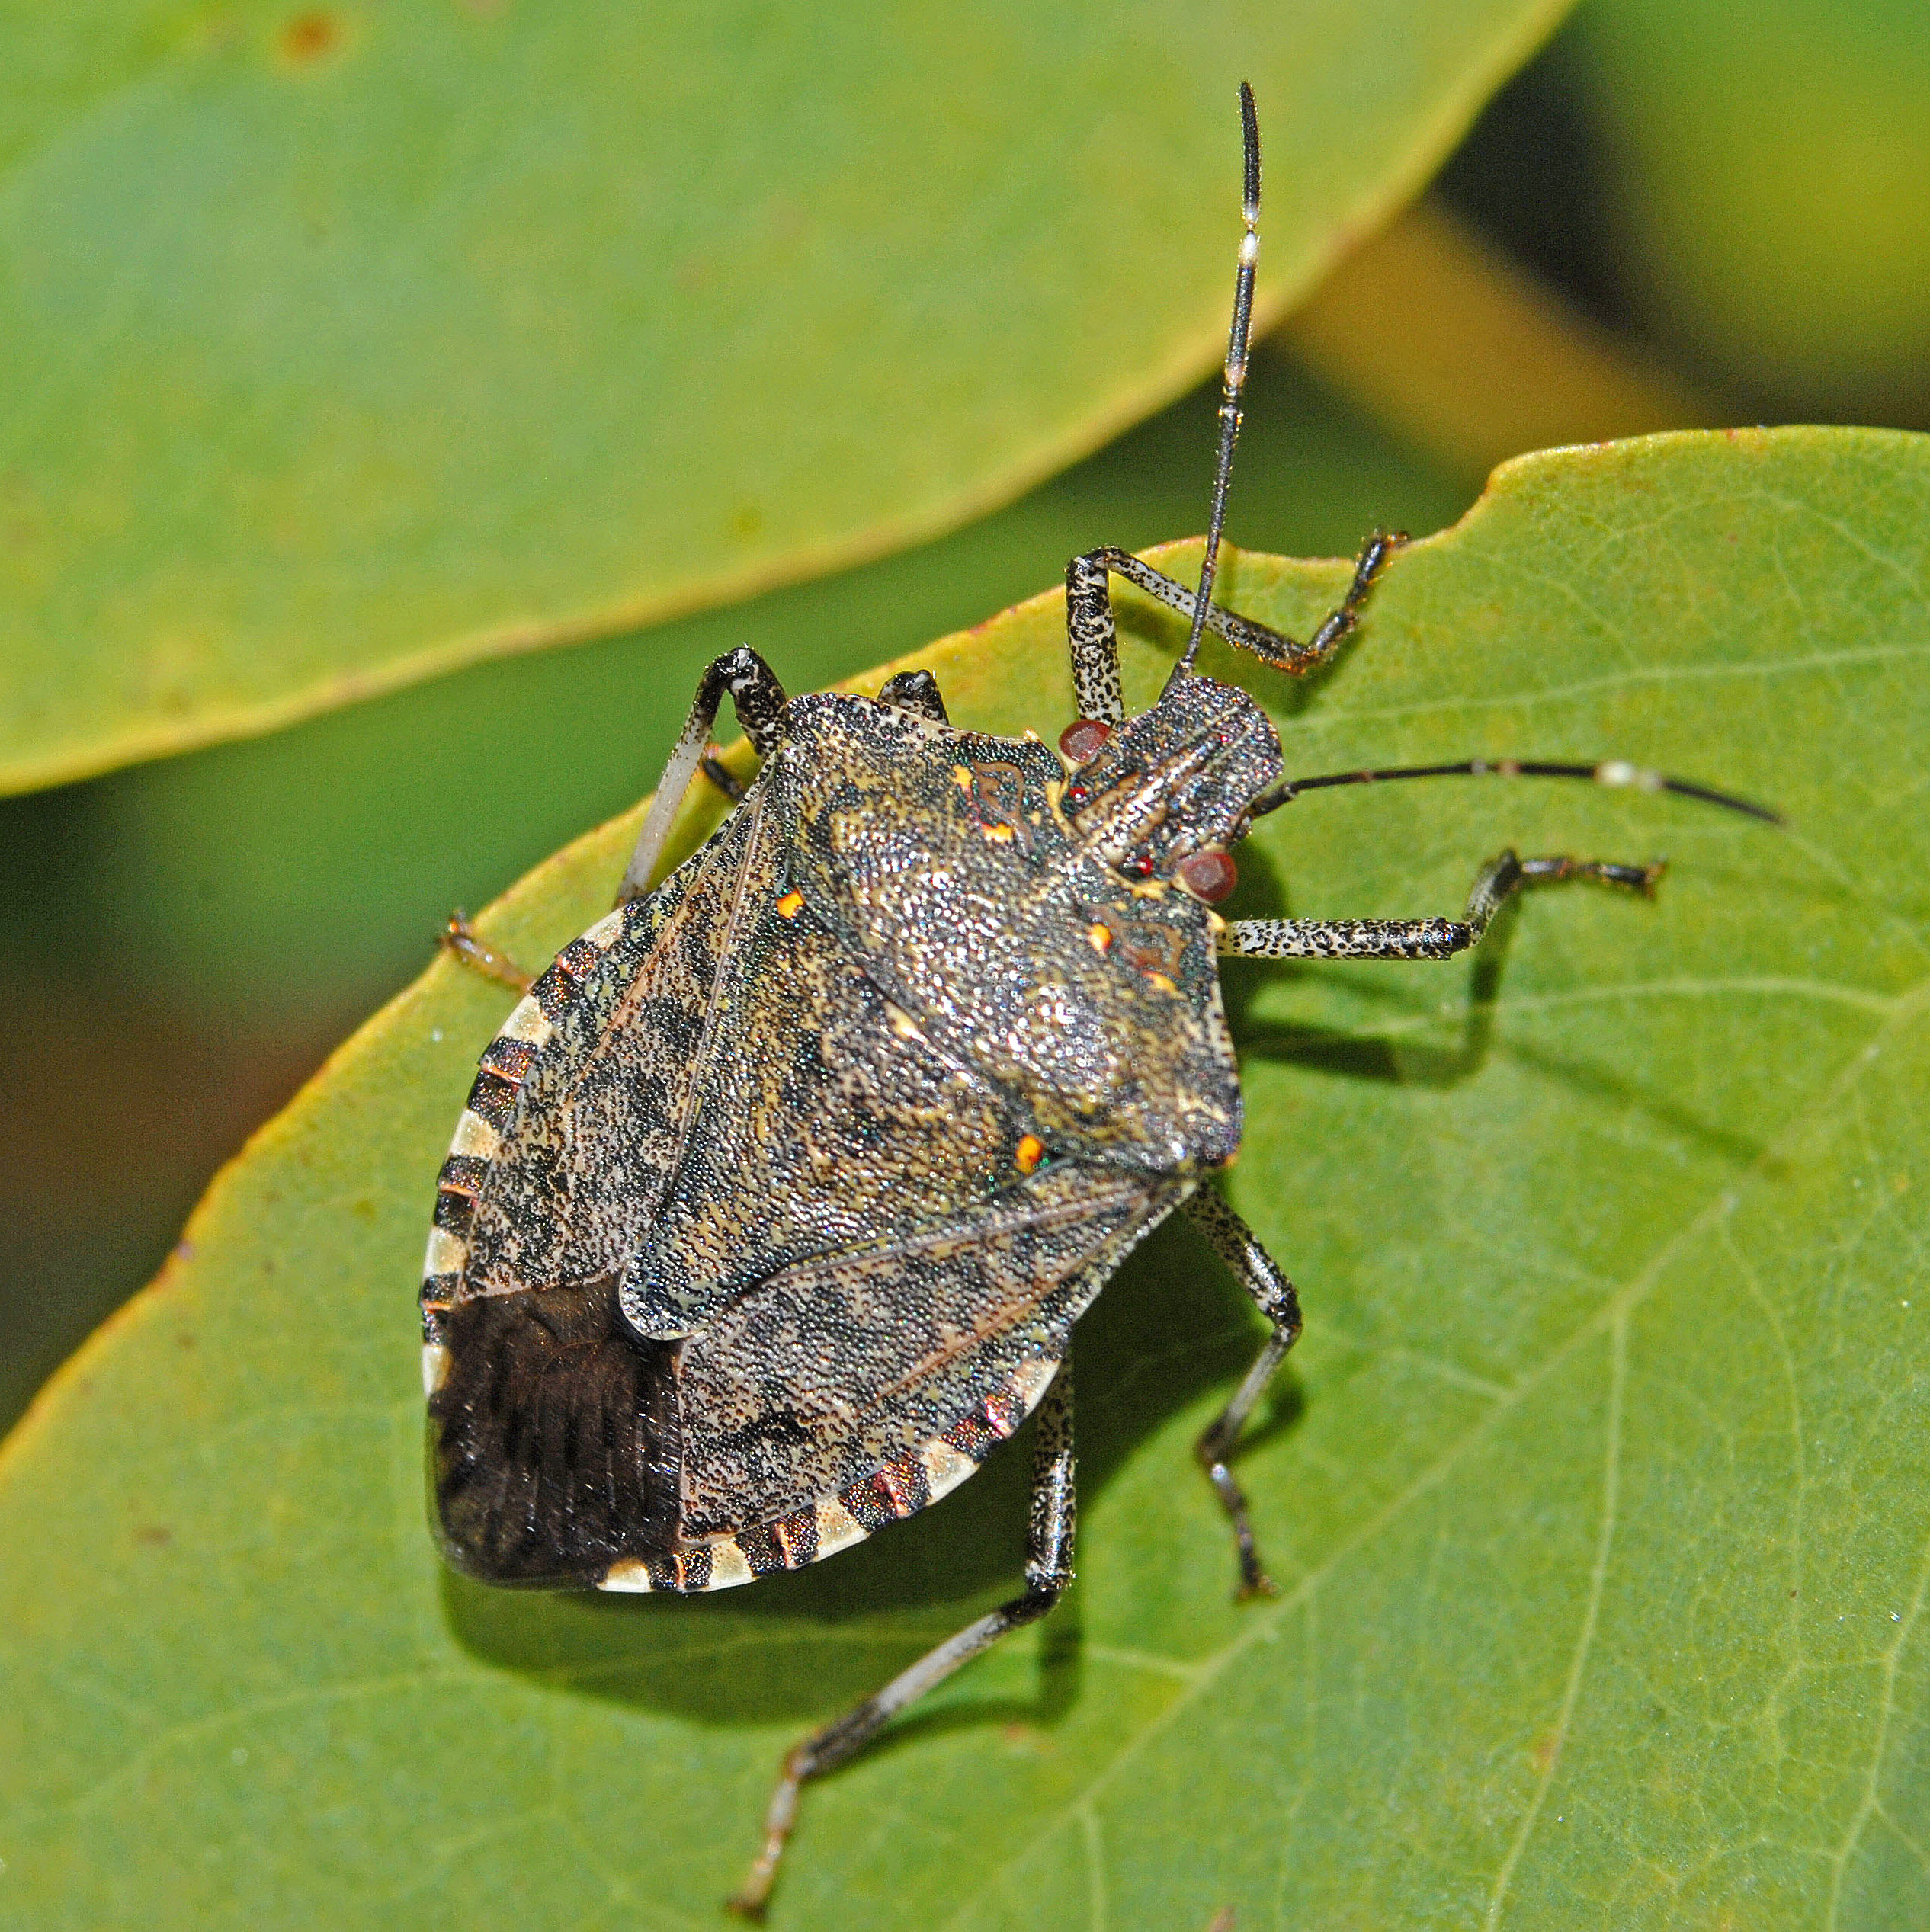 Brown marmorated stink bug - Wikipedia